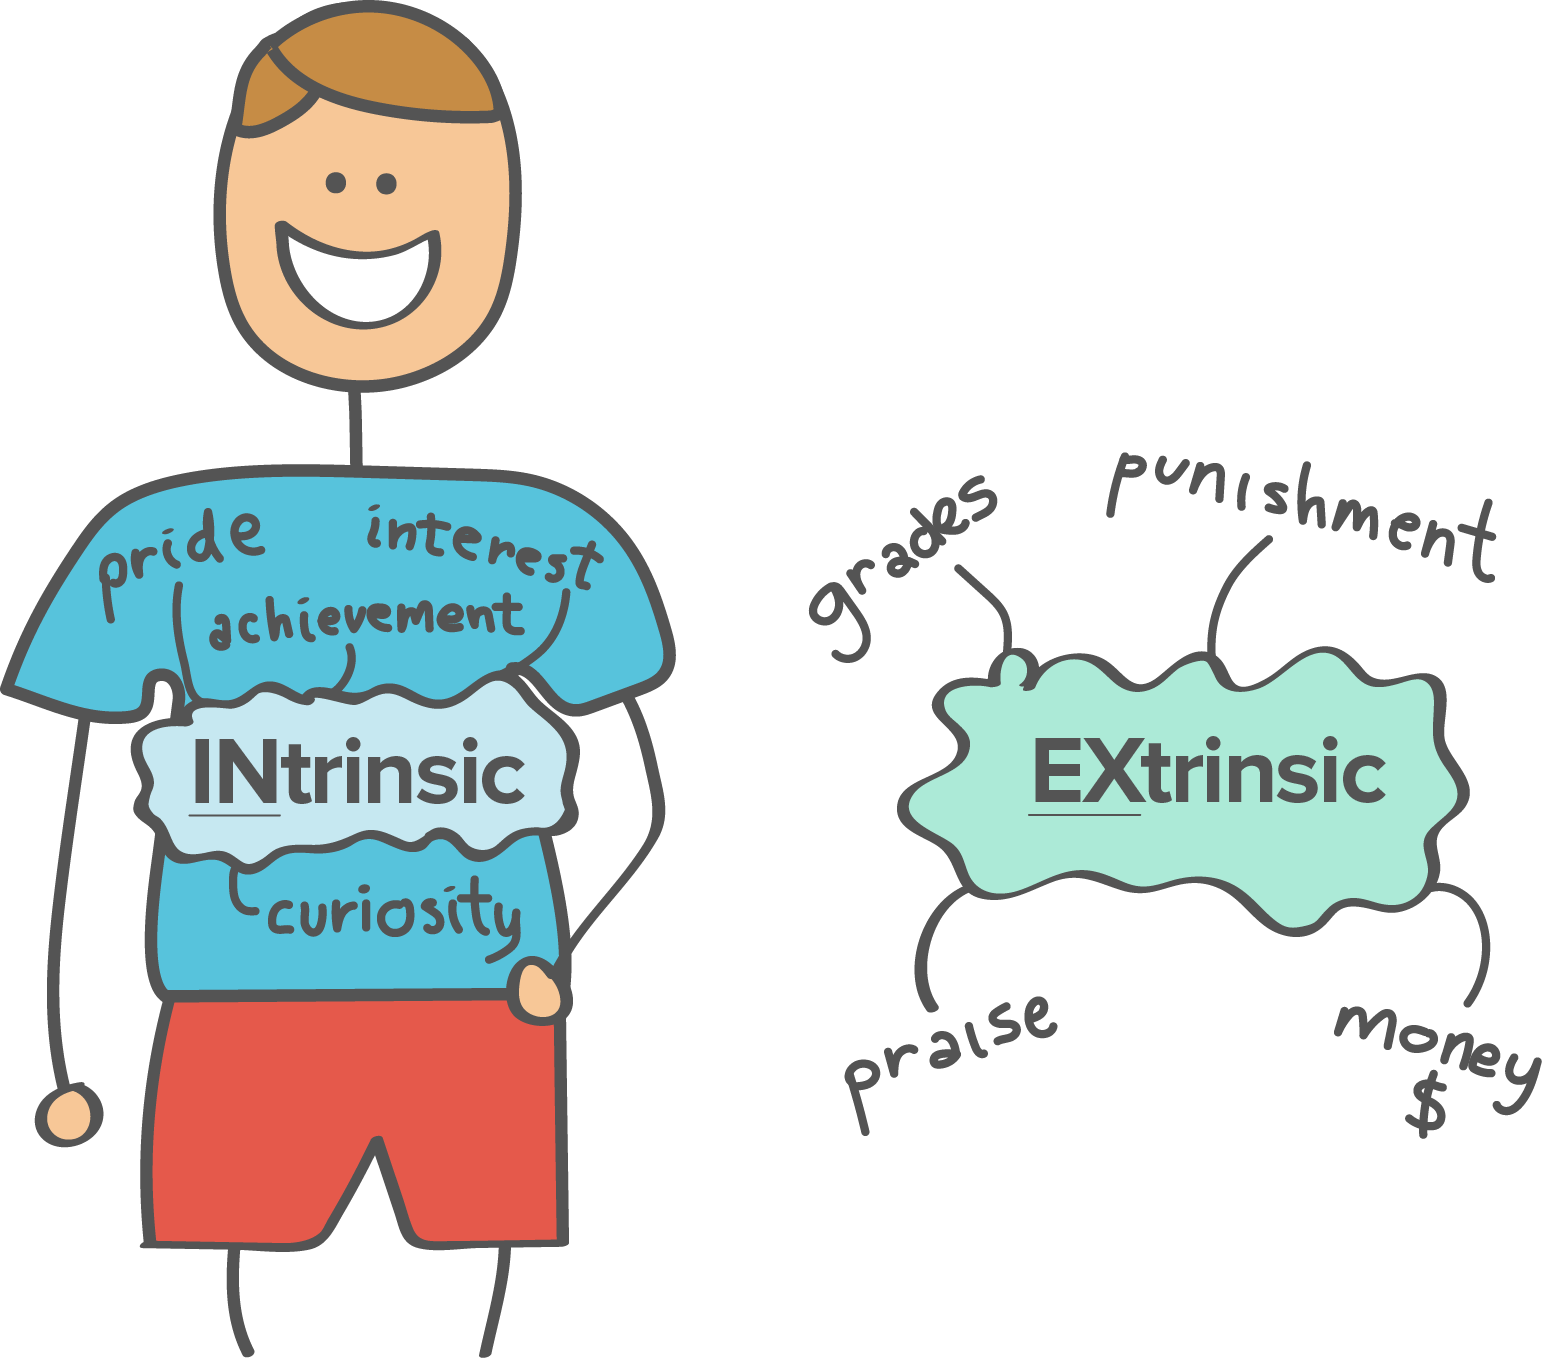 compare and contrast intrinsic and extrinsic motivation